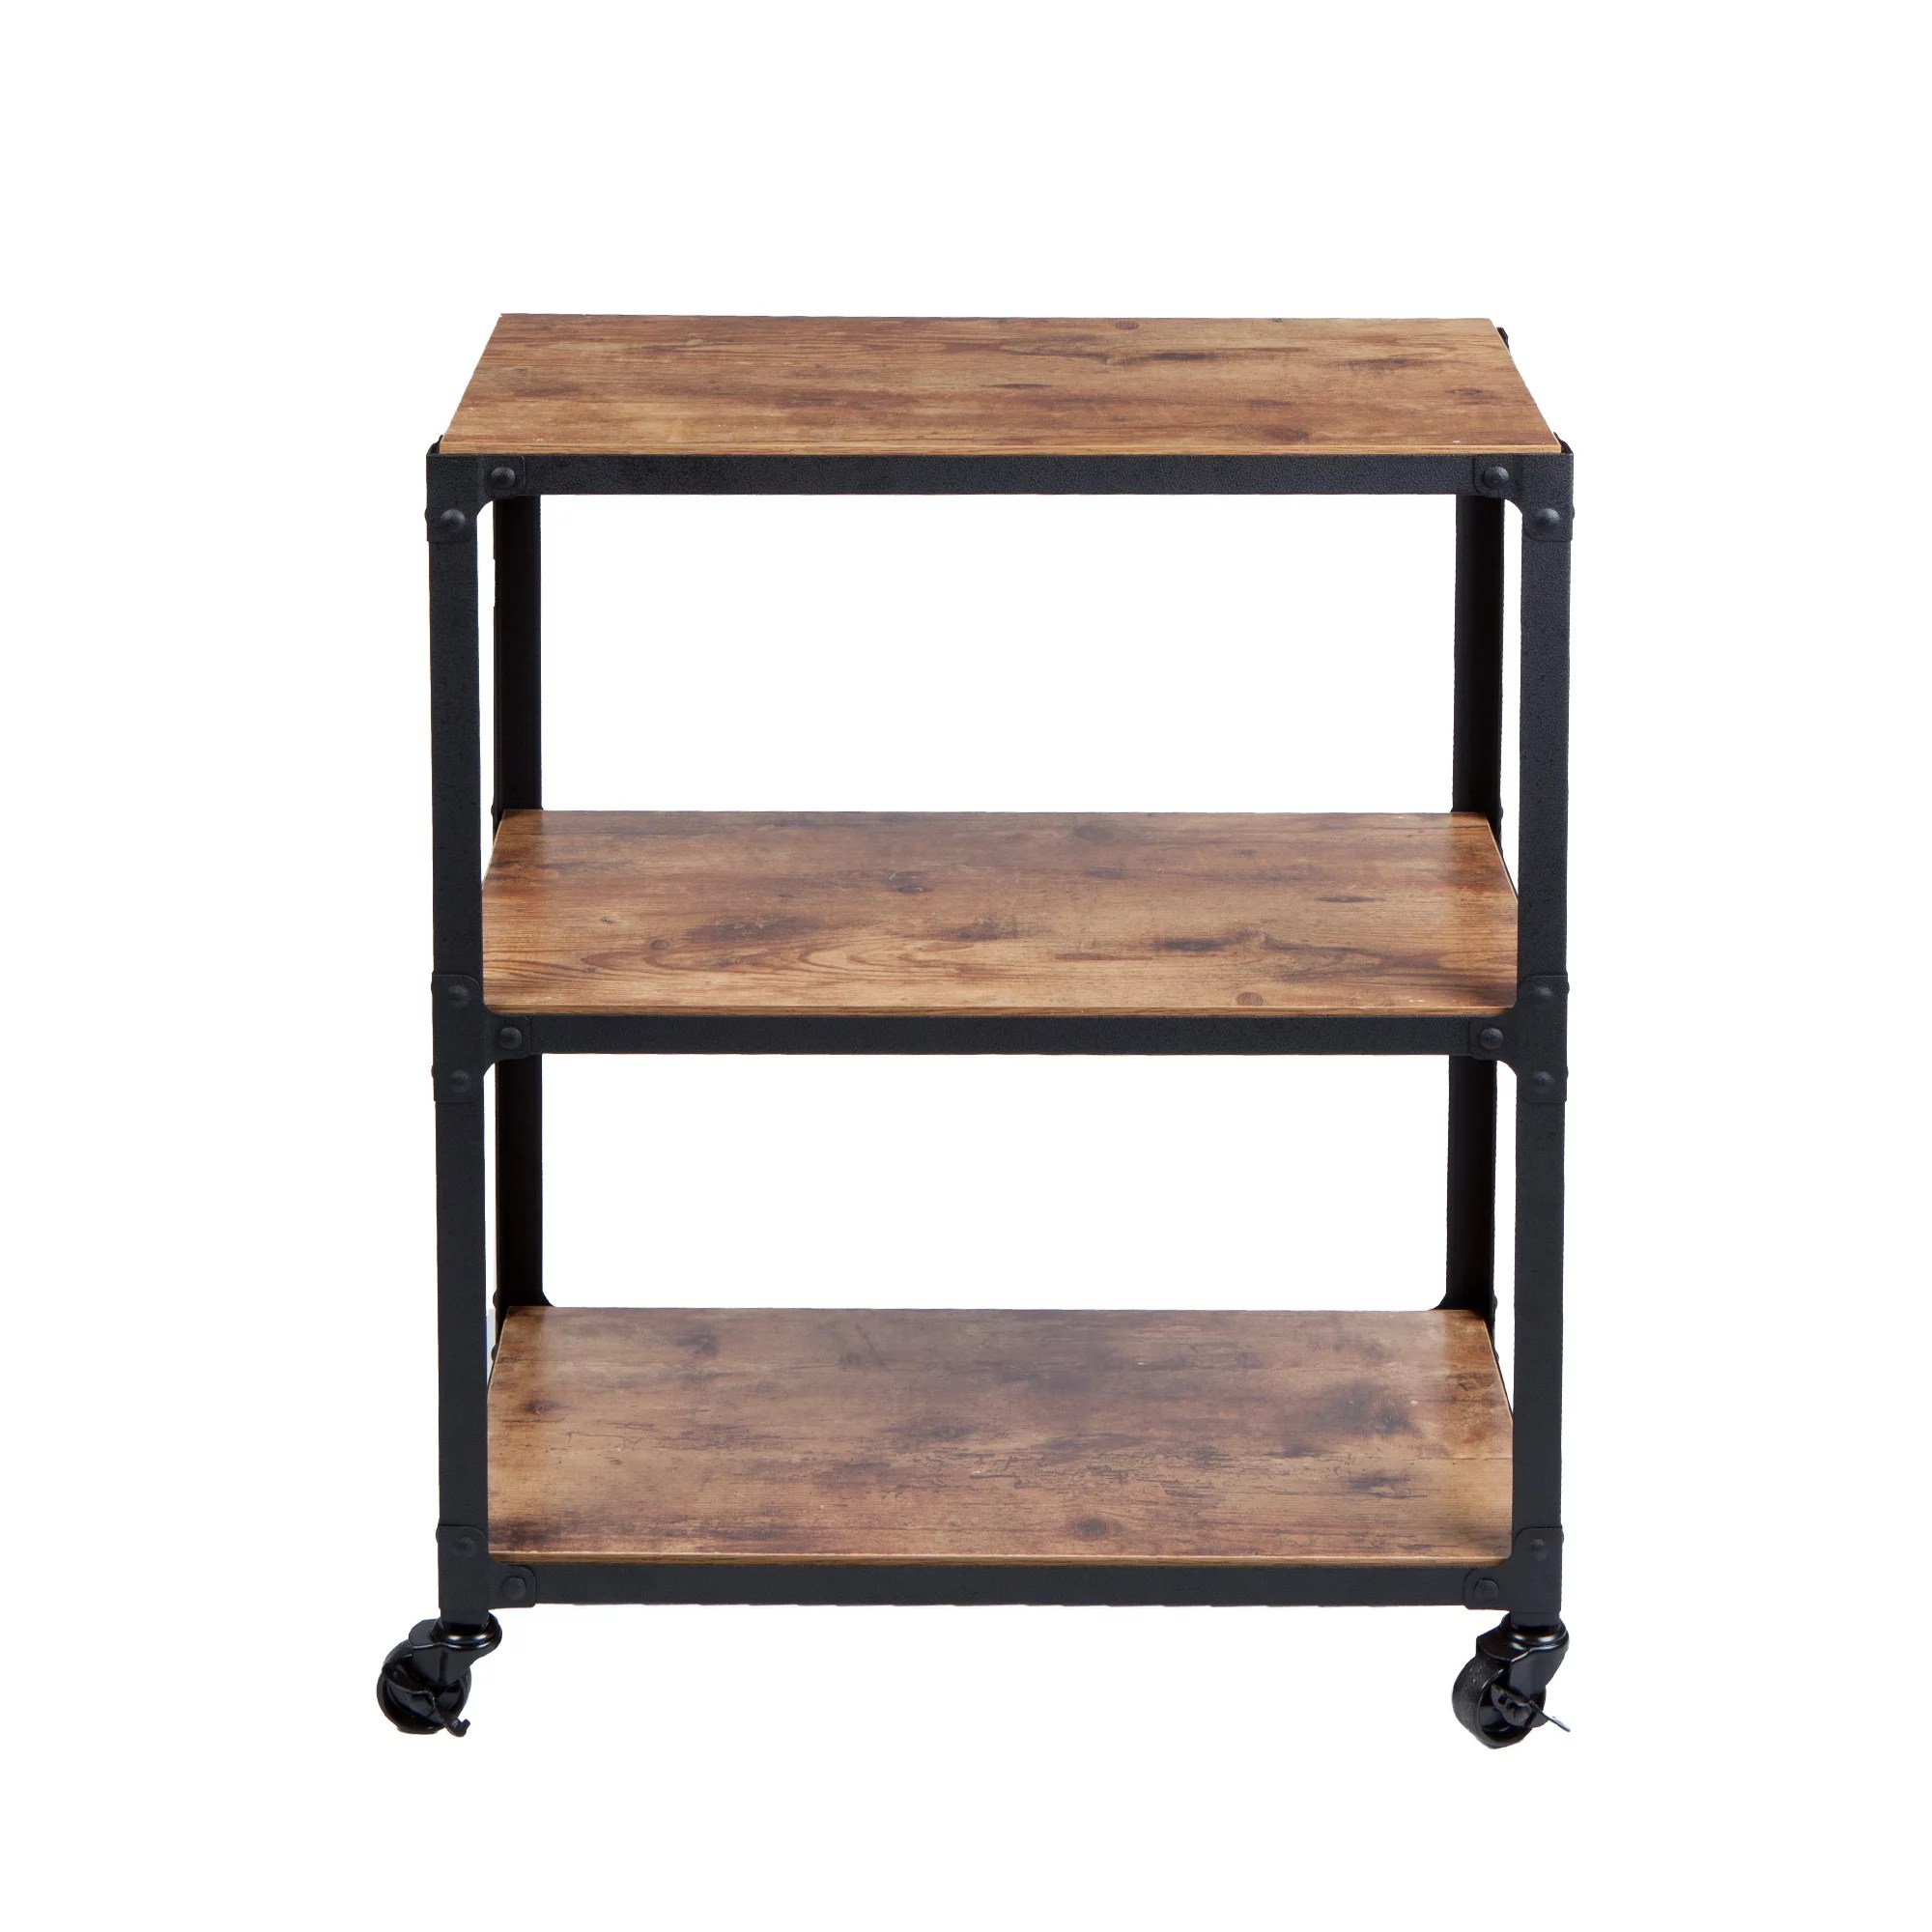 kitchen rolling cart french country island islands carts walmart com product image mind reader charm 3 tier wood metal all purpose black with